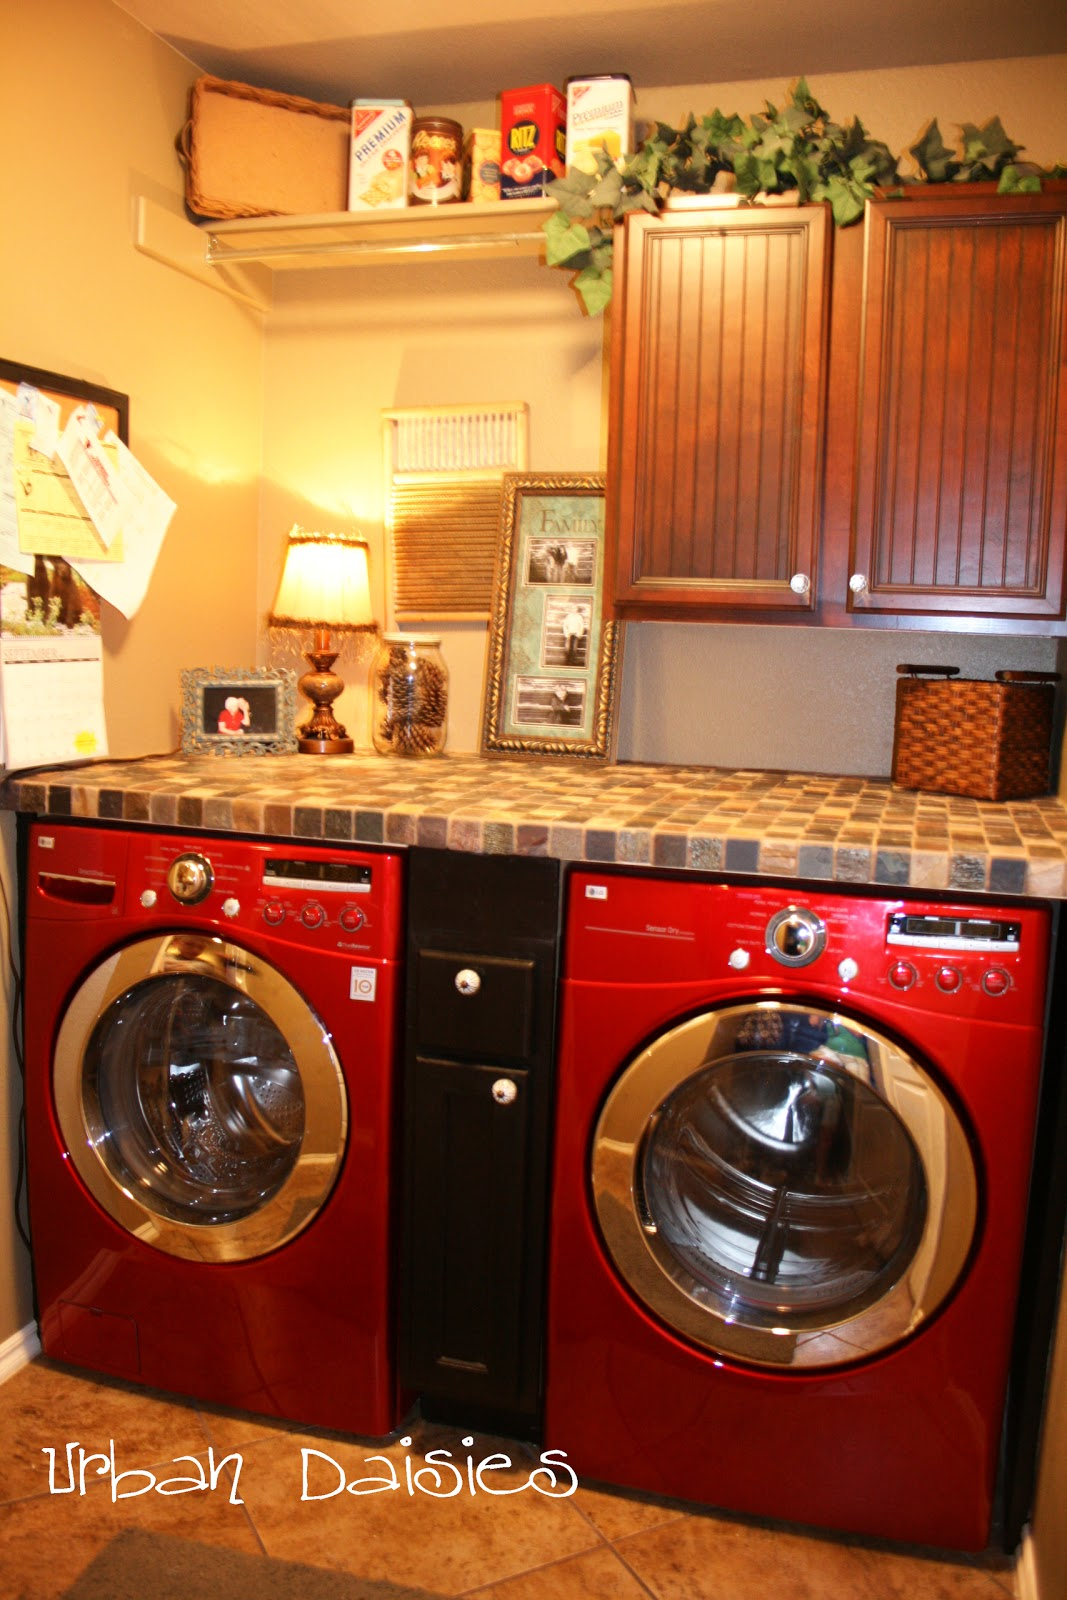 Urban daisies laundry room redo for Washer and dryer in kitchen ideas